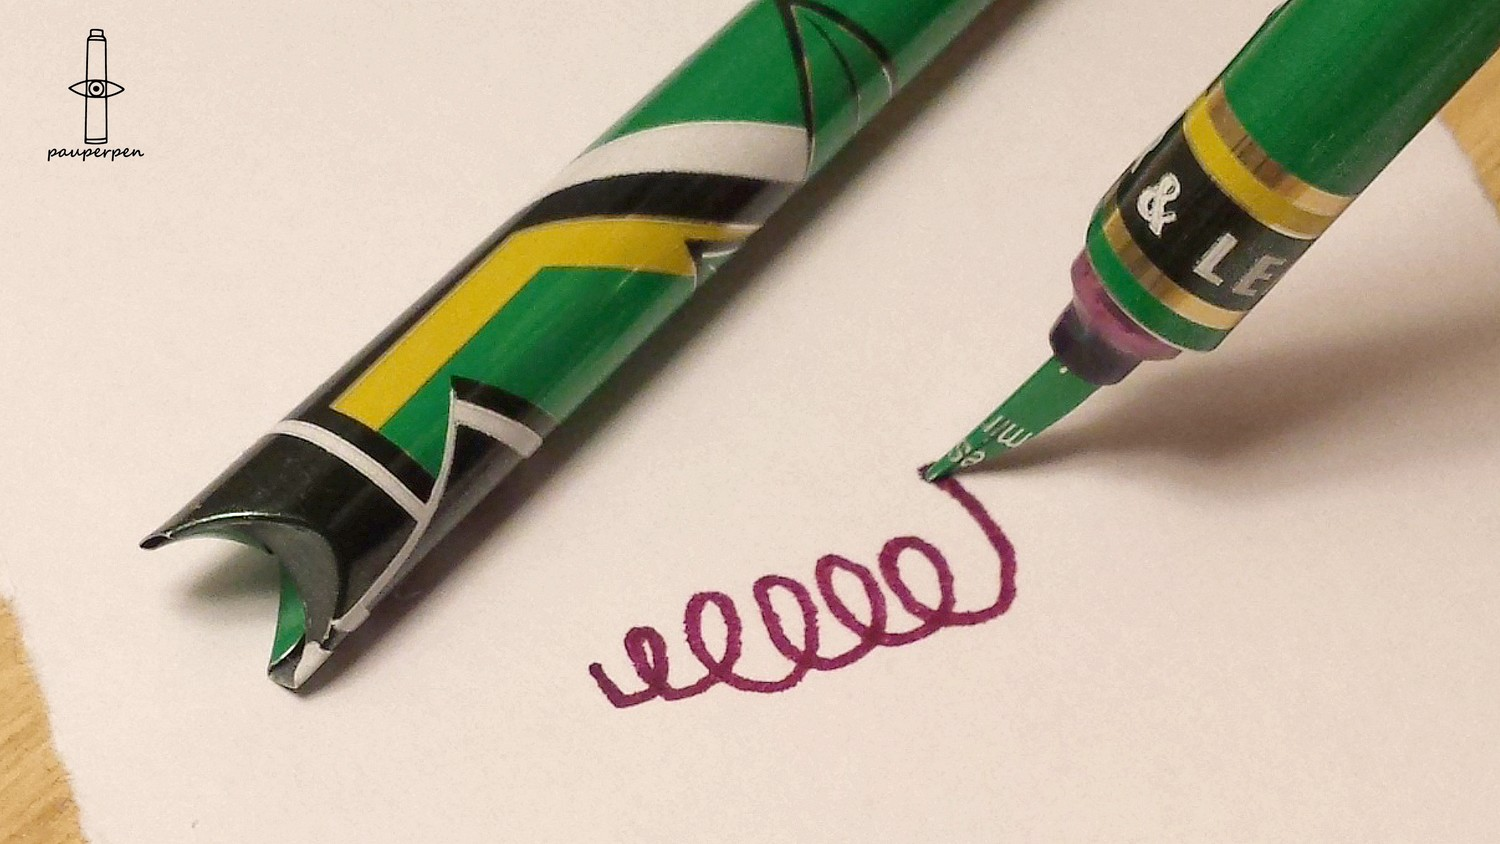 Green PauperPen with ColorSword nib - writing test 3.jpg